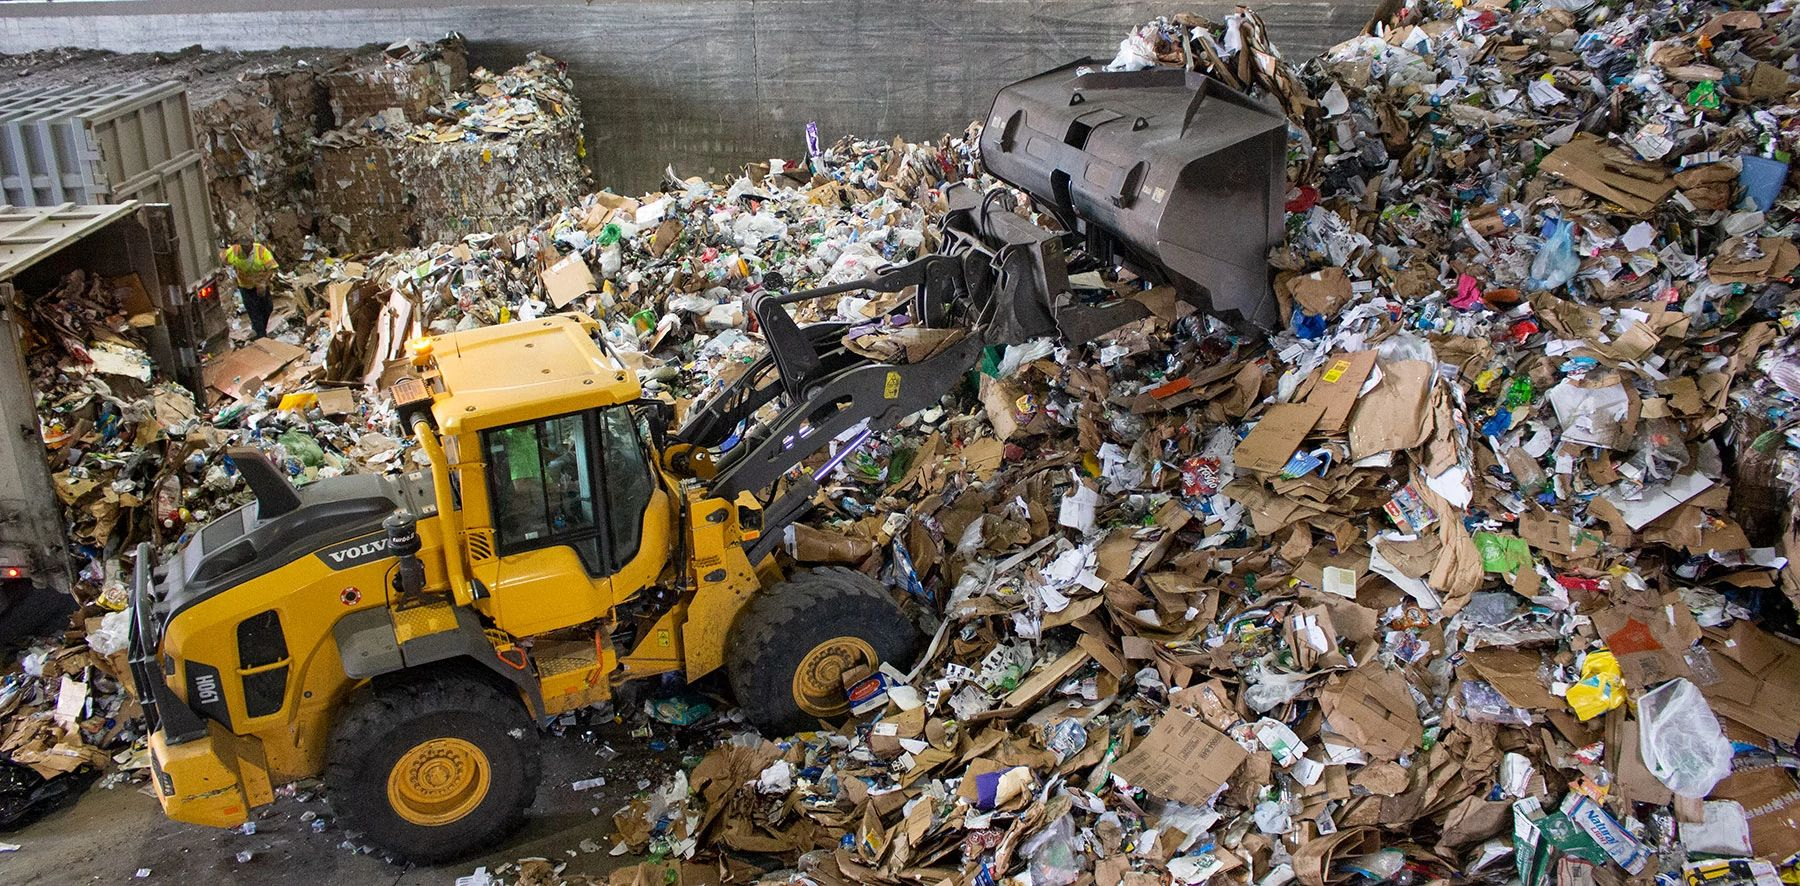 Heavy equipment scoops up a pile of recyclables in a recycling center